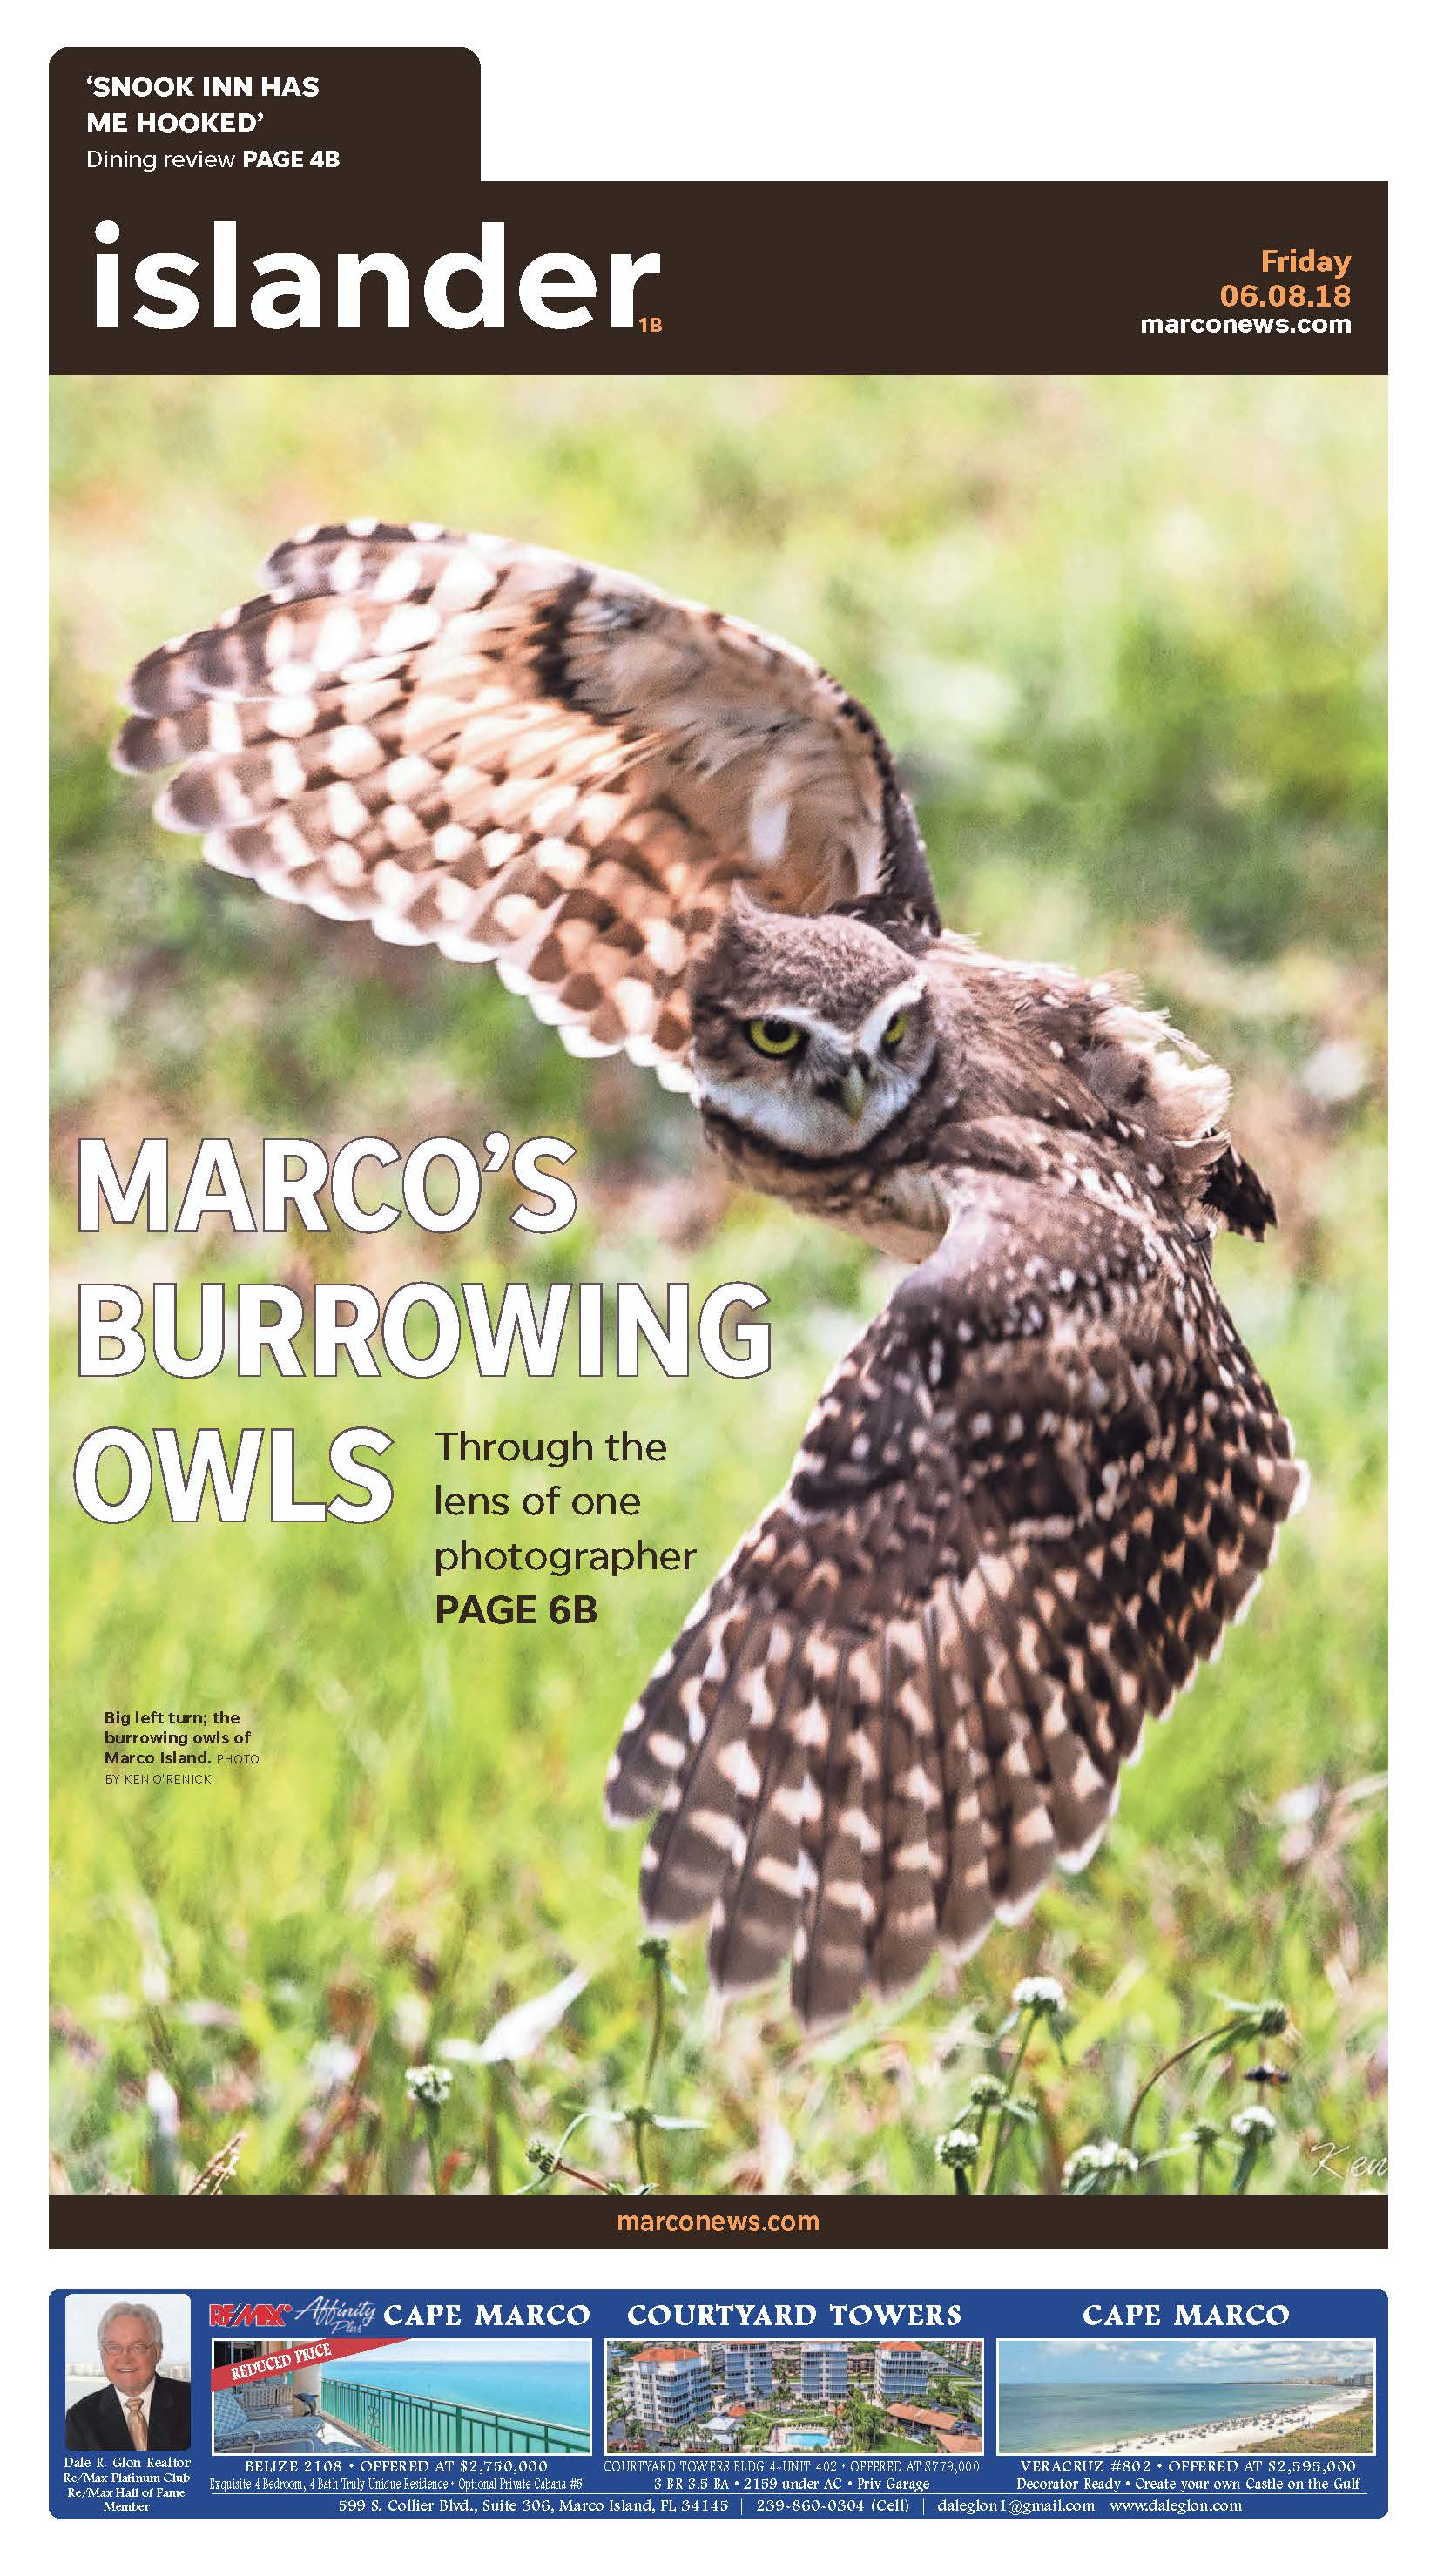 BILL GREEN PROOF SHEET MarcoEagle_OWLS 20180608_B01_B06_Page_1.jpg